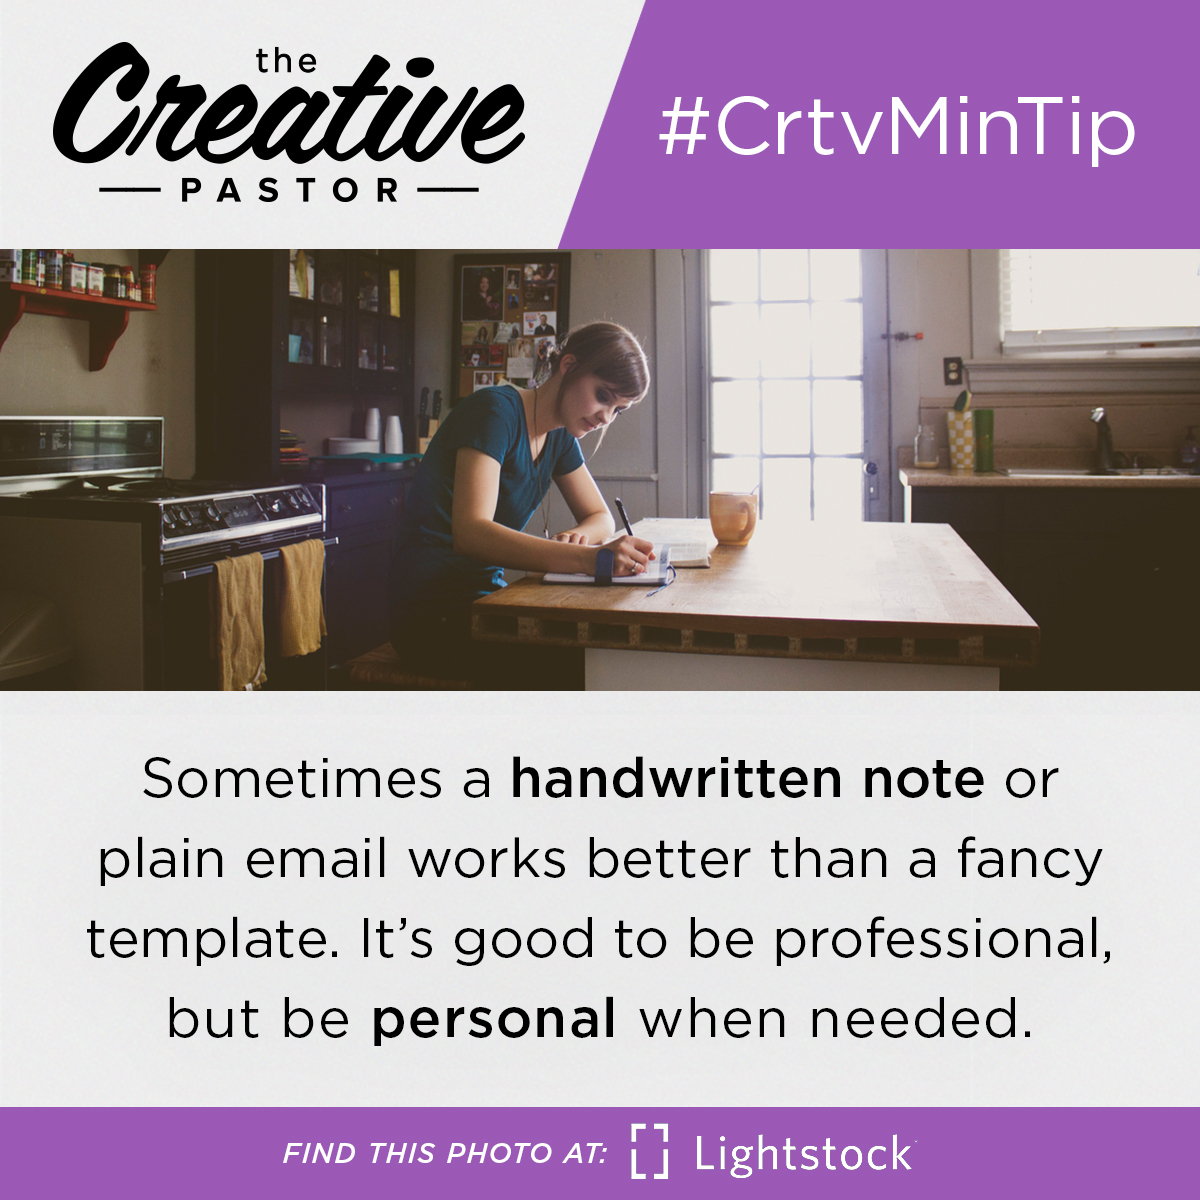 Sometimes a handwritten note or plain email works better than a fancy template. It's good to be professional, but be personal when needed.